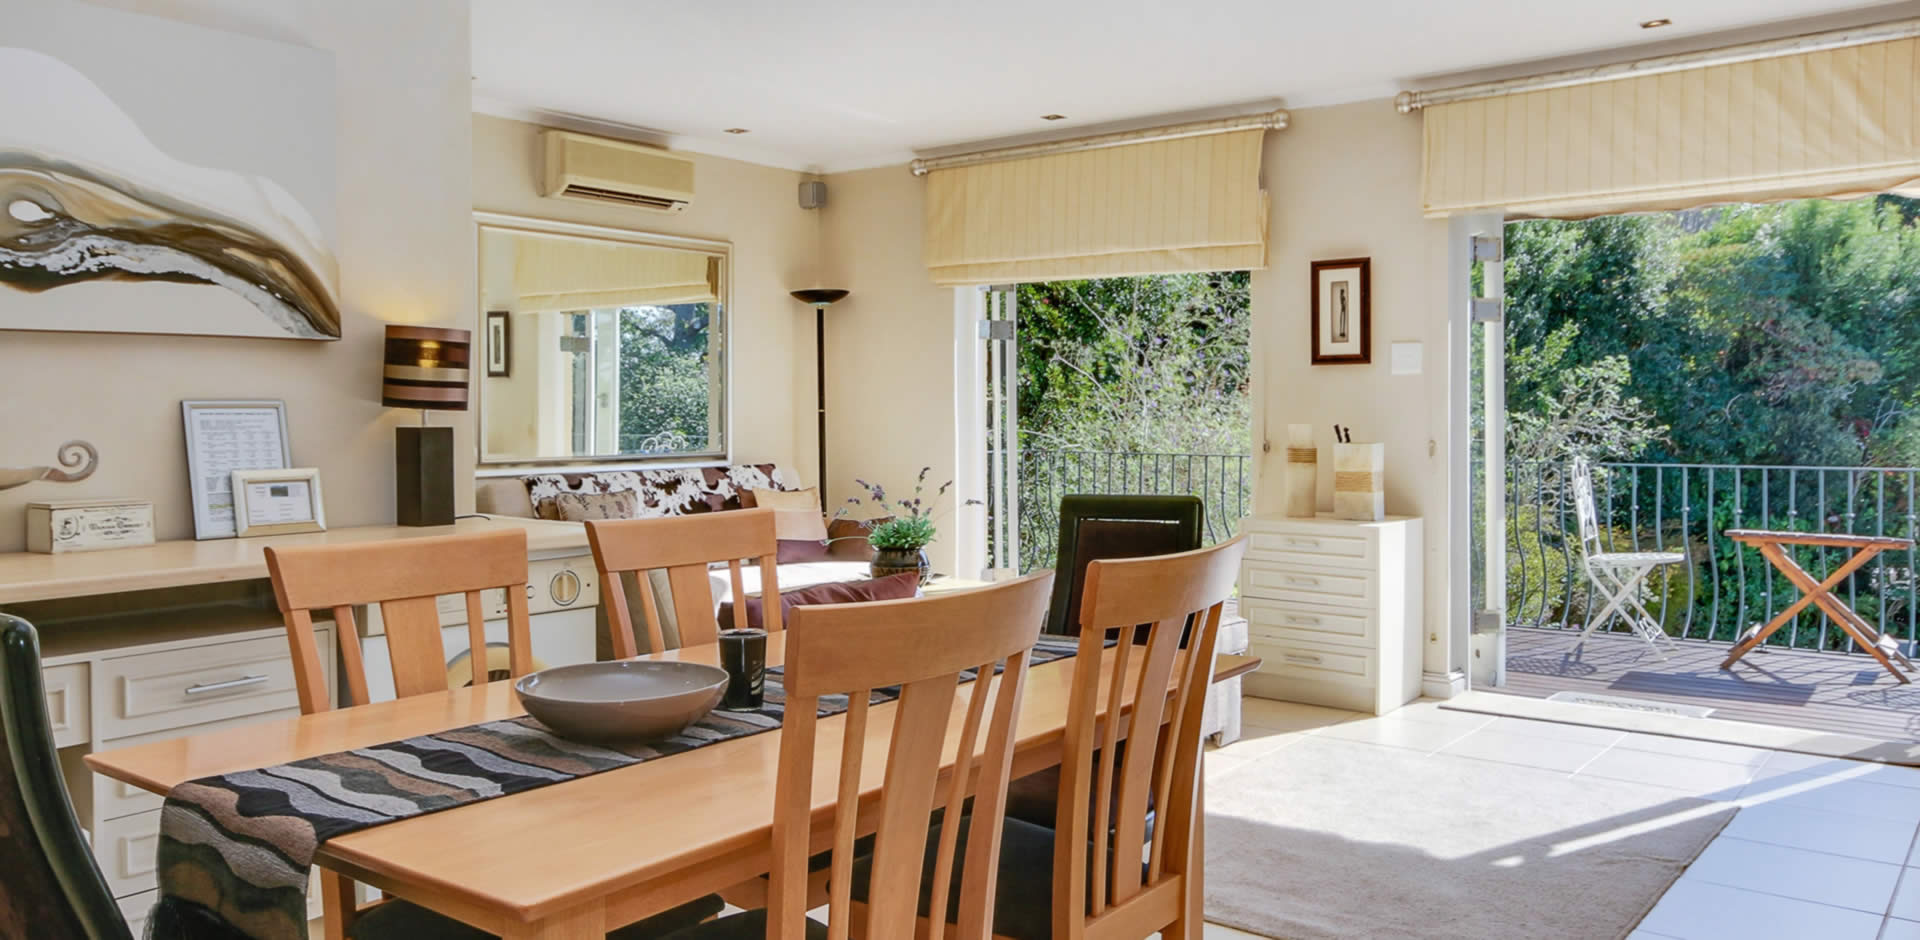 Avenue Torquay Bed & Breakfast - Self-catering